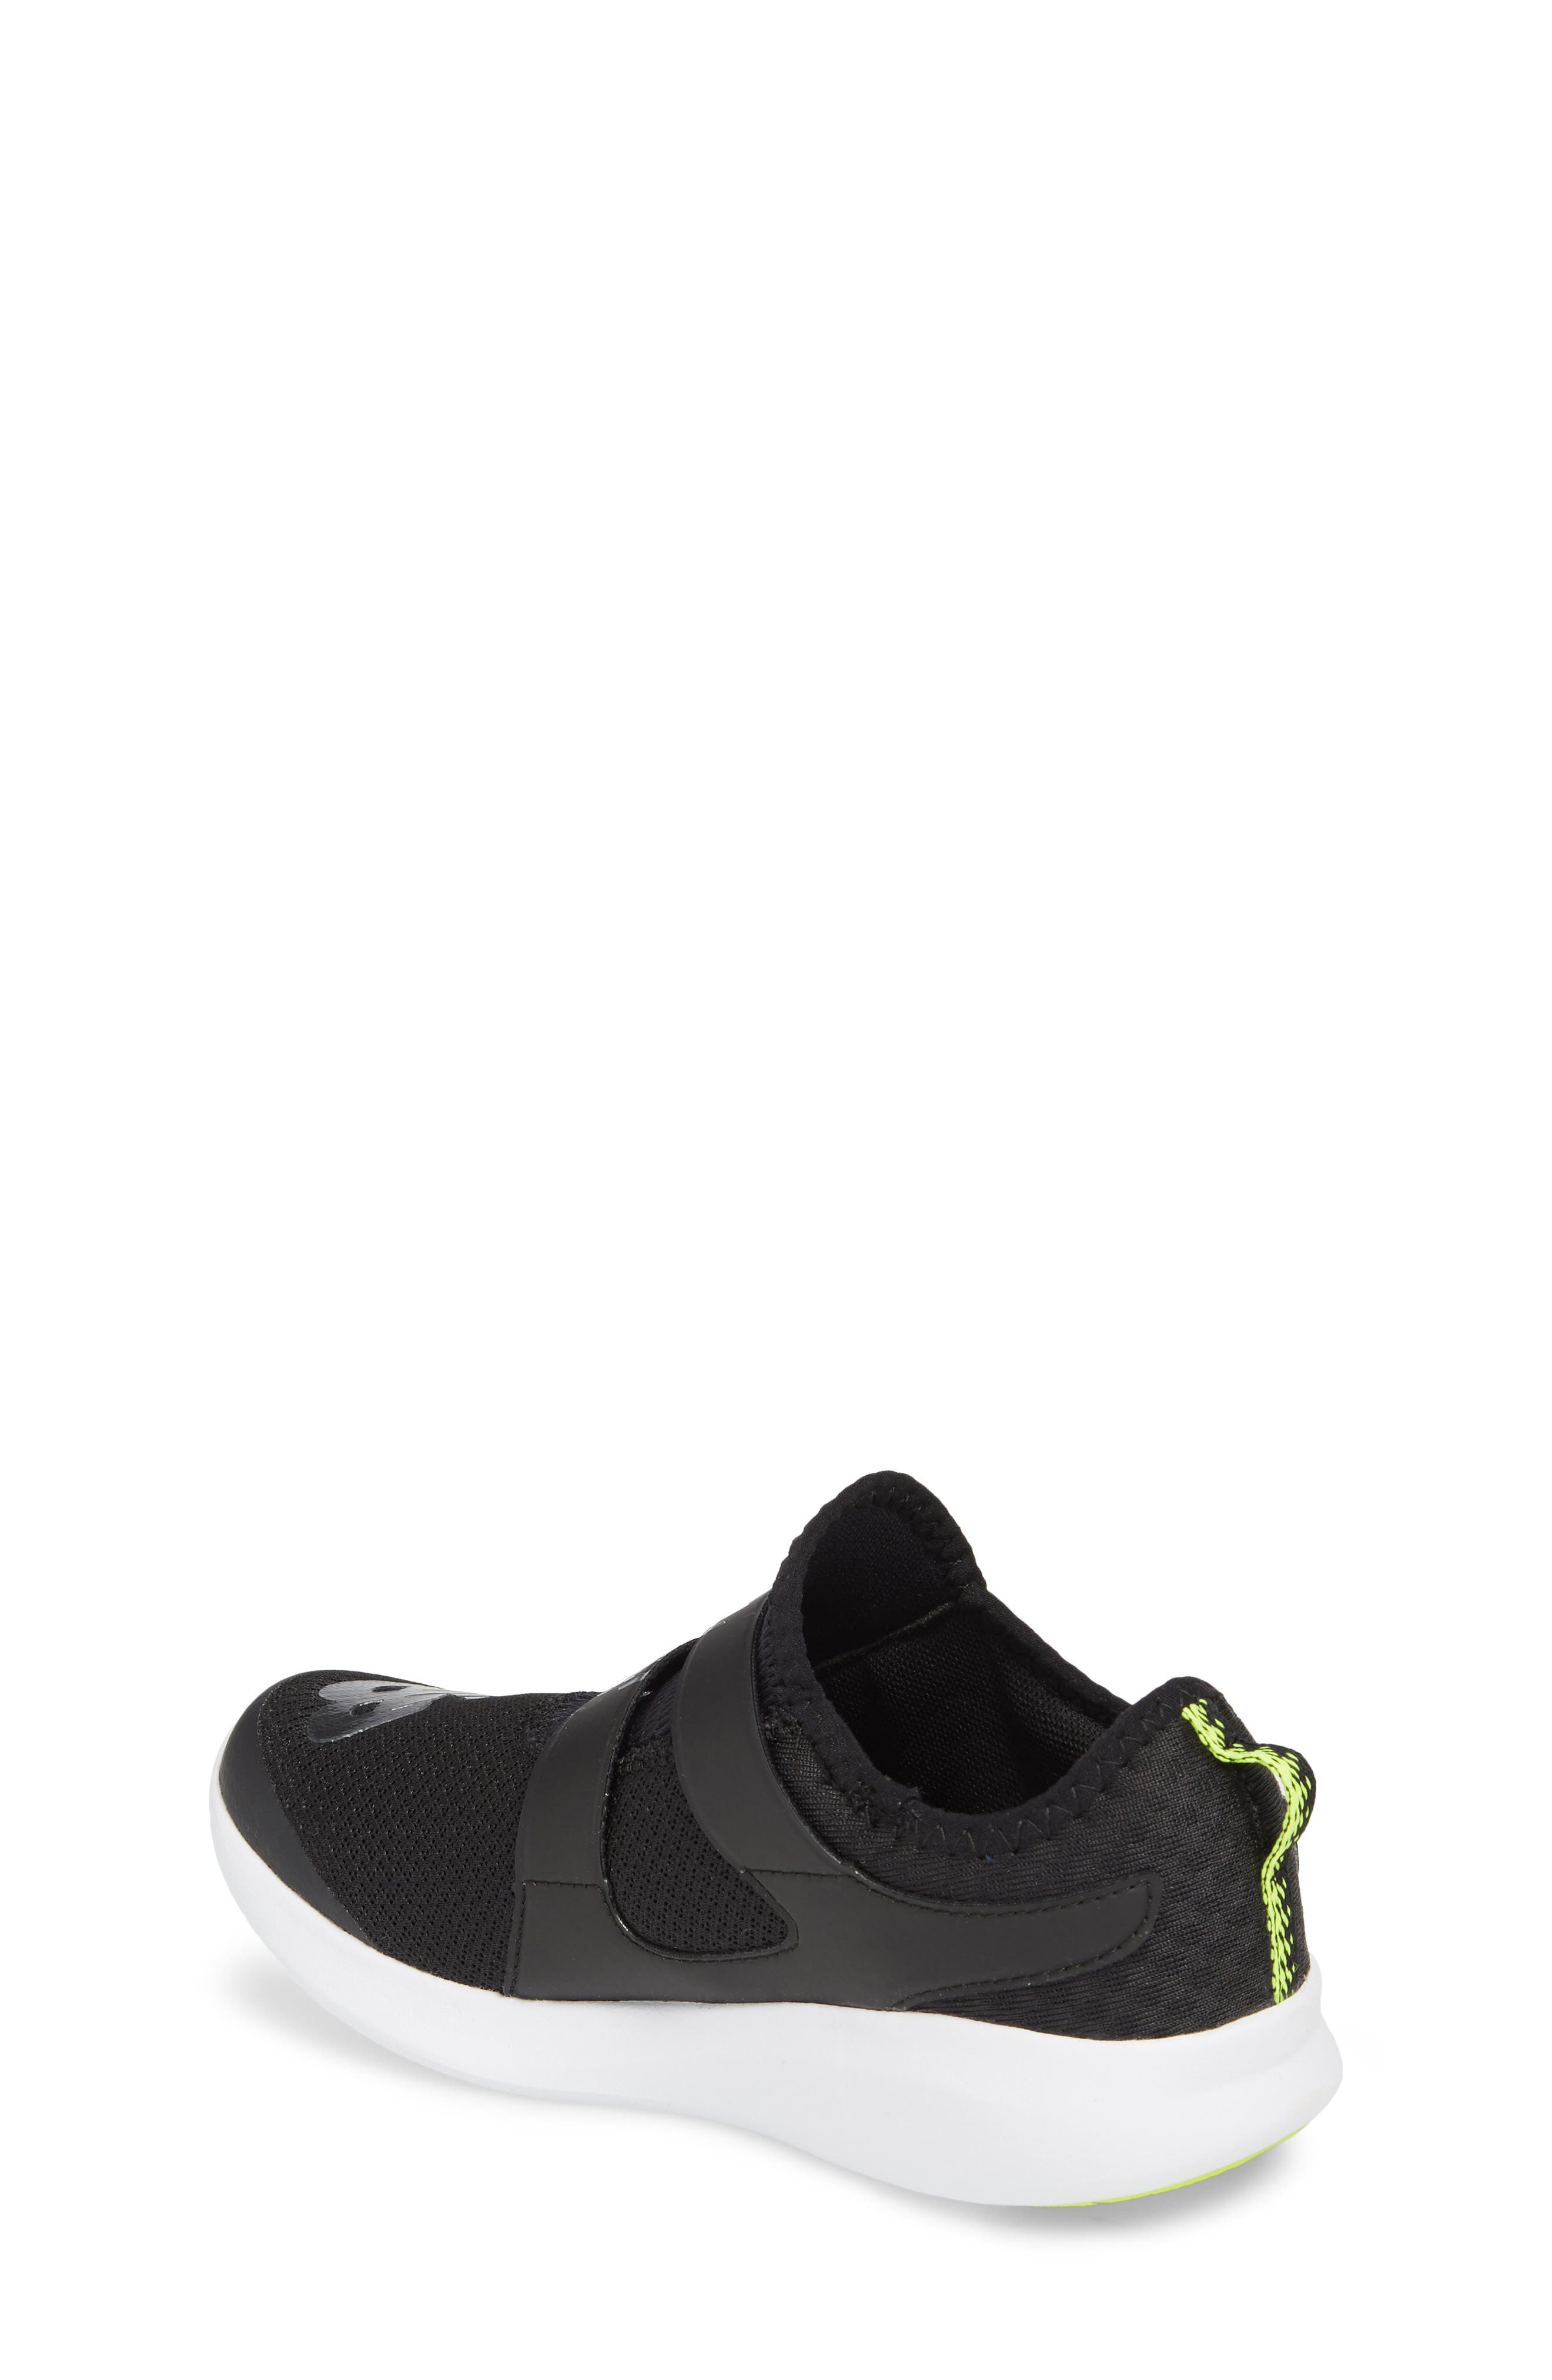 BKO Running Shoe,                             Alternate thumbnail 4, color,